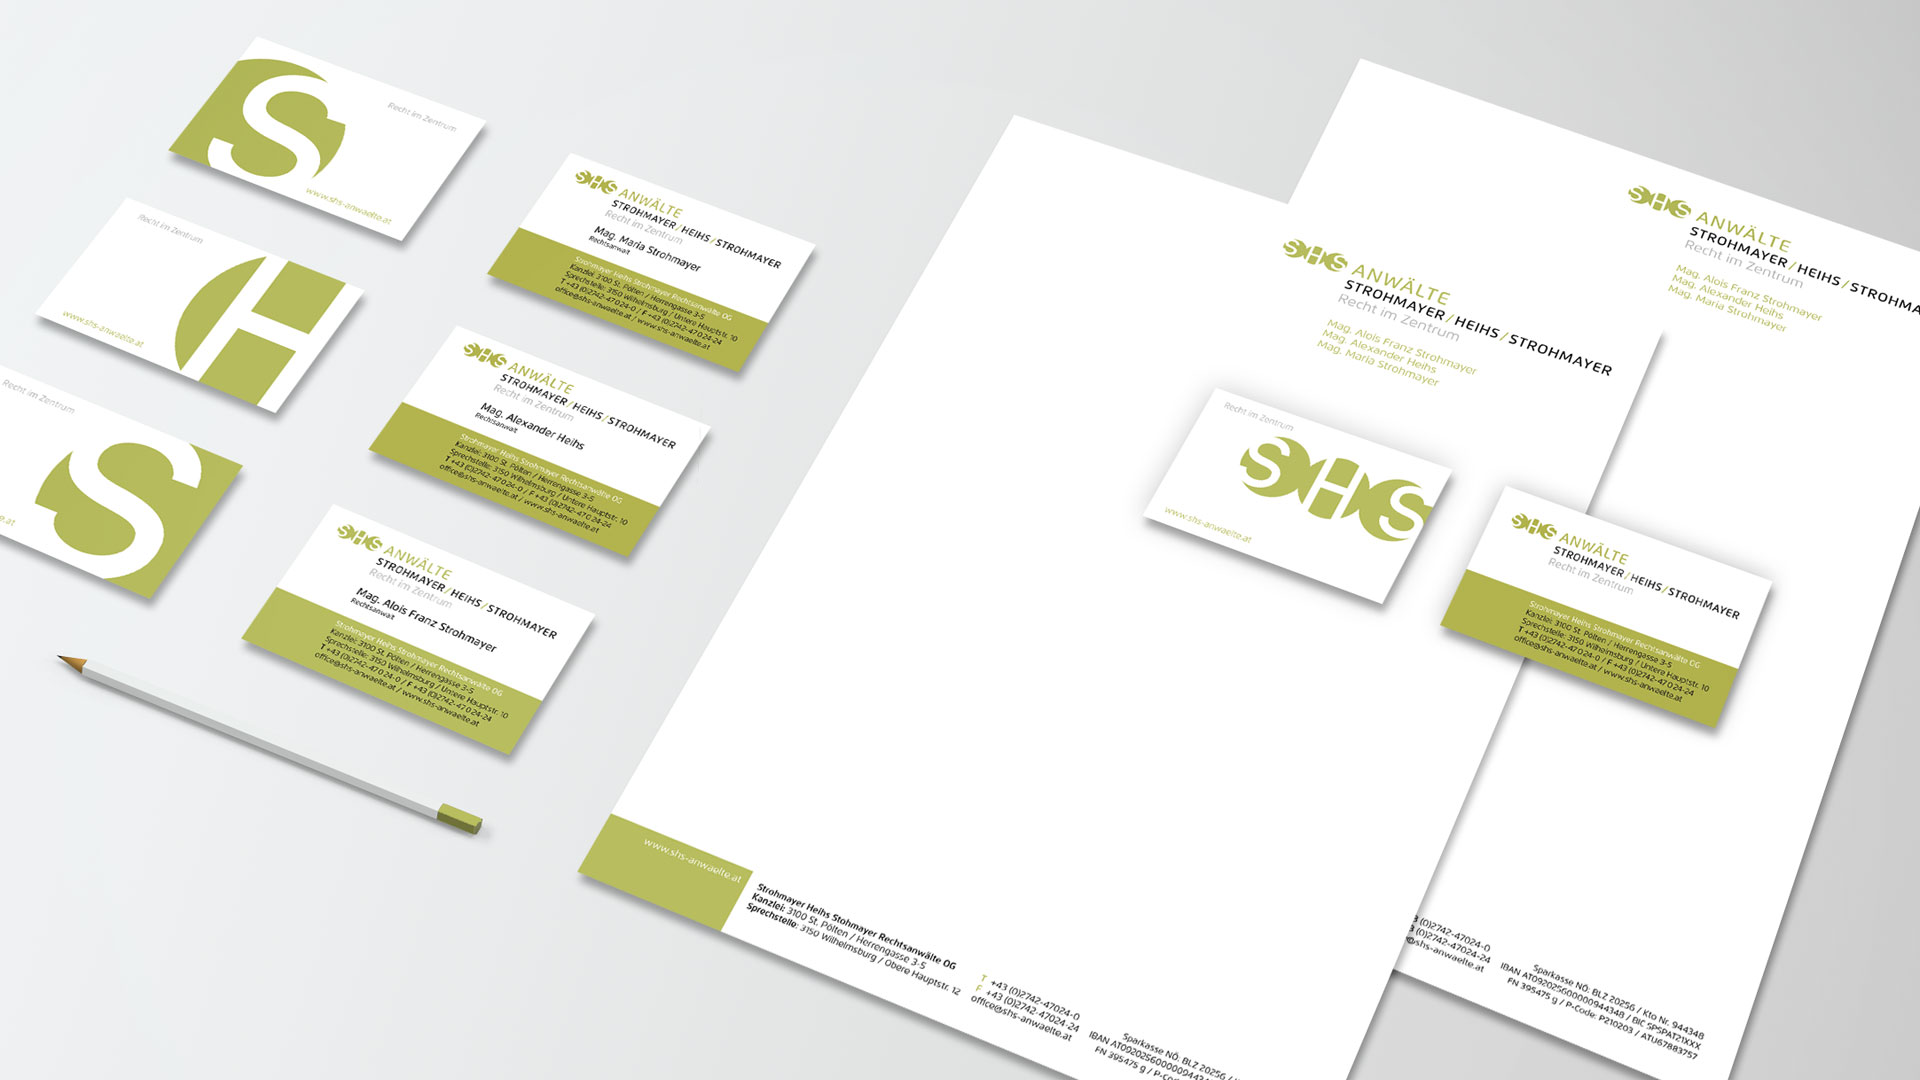 SHS Corporate Design